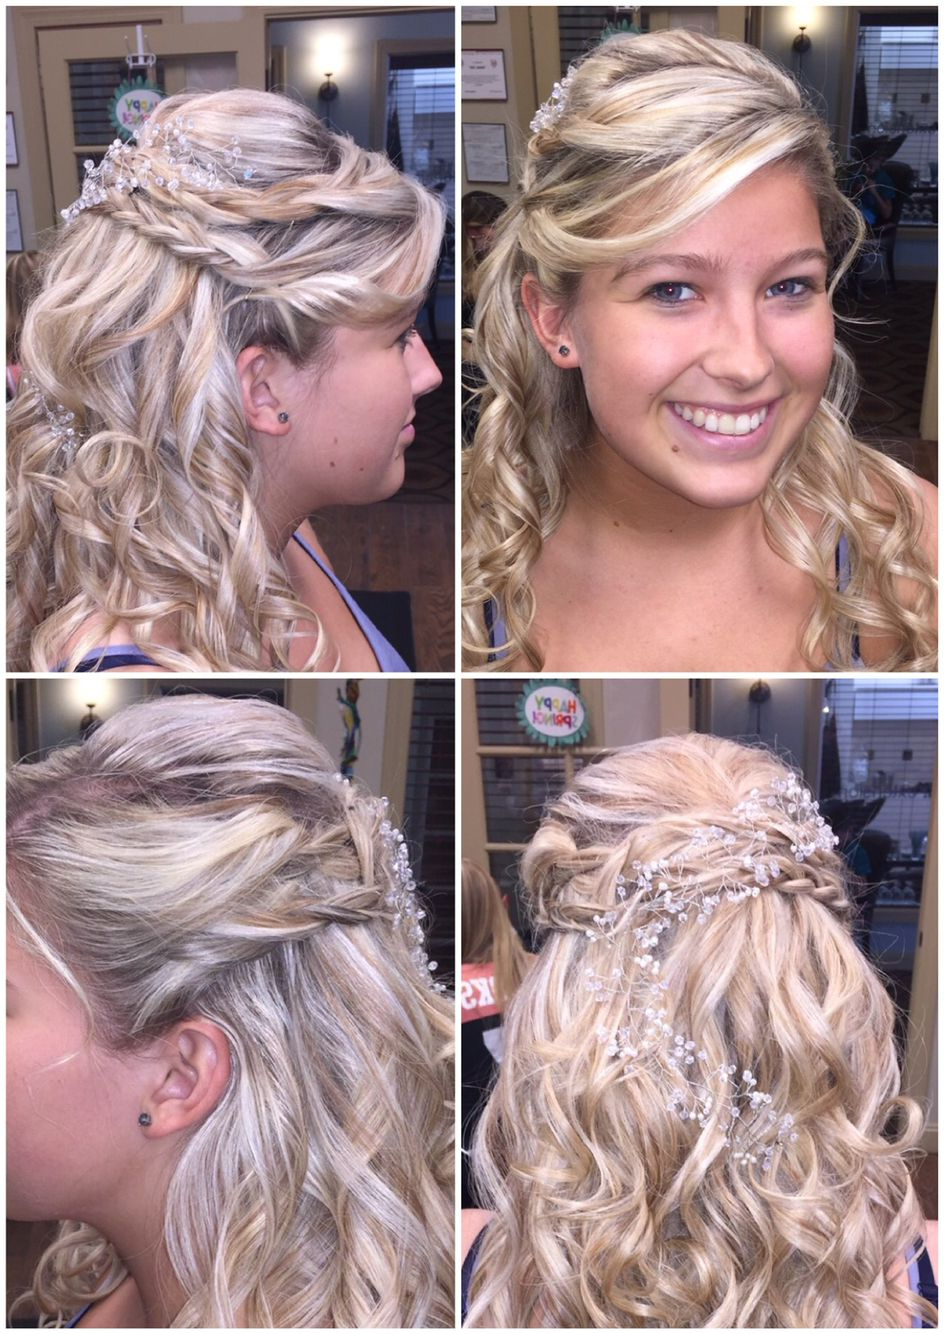 2020 Pinned Back Side Hairstyles Throughout Prom Half Up Dobraided Sides Pinned Back With Spiral (View 7 of 20)